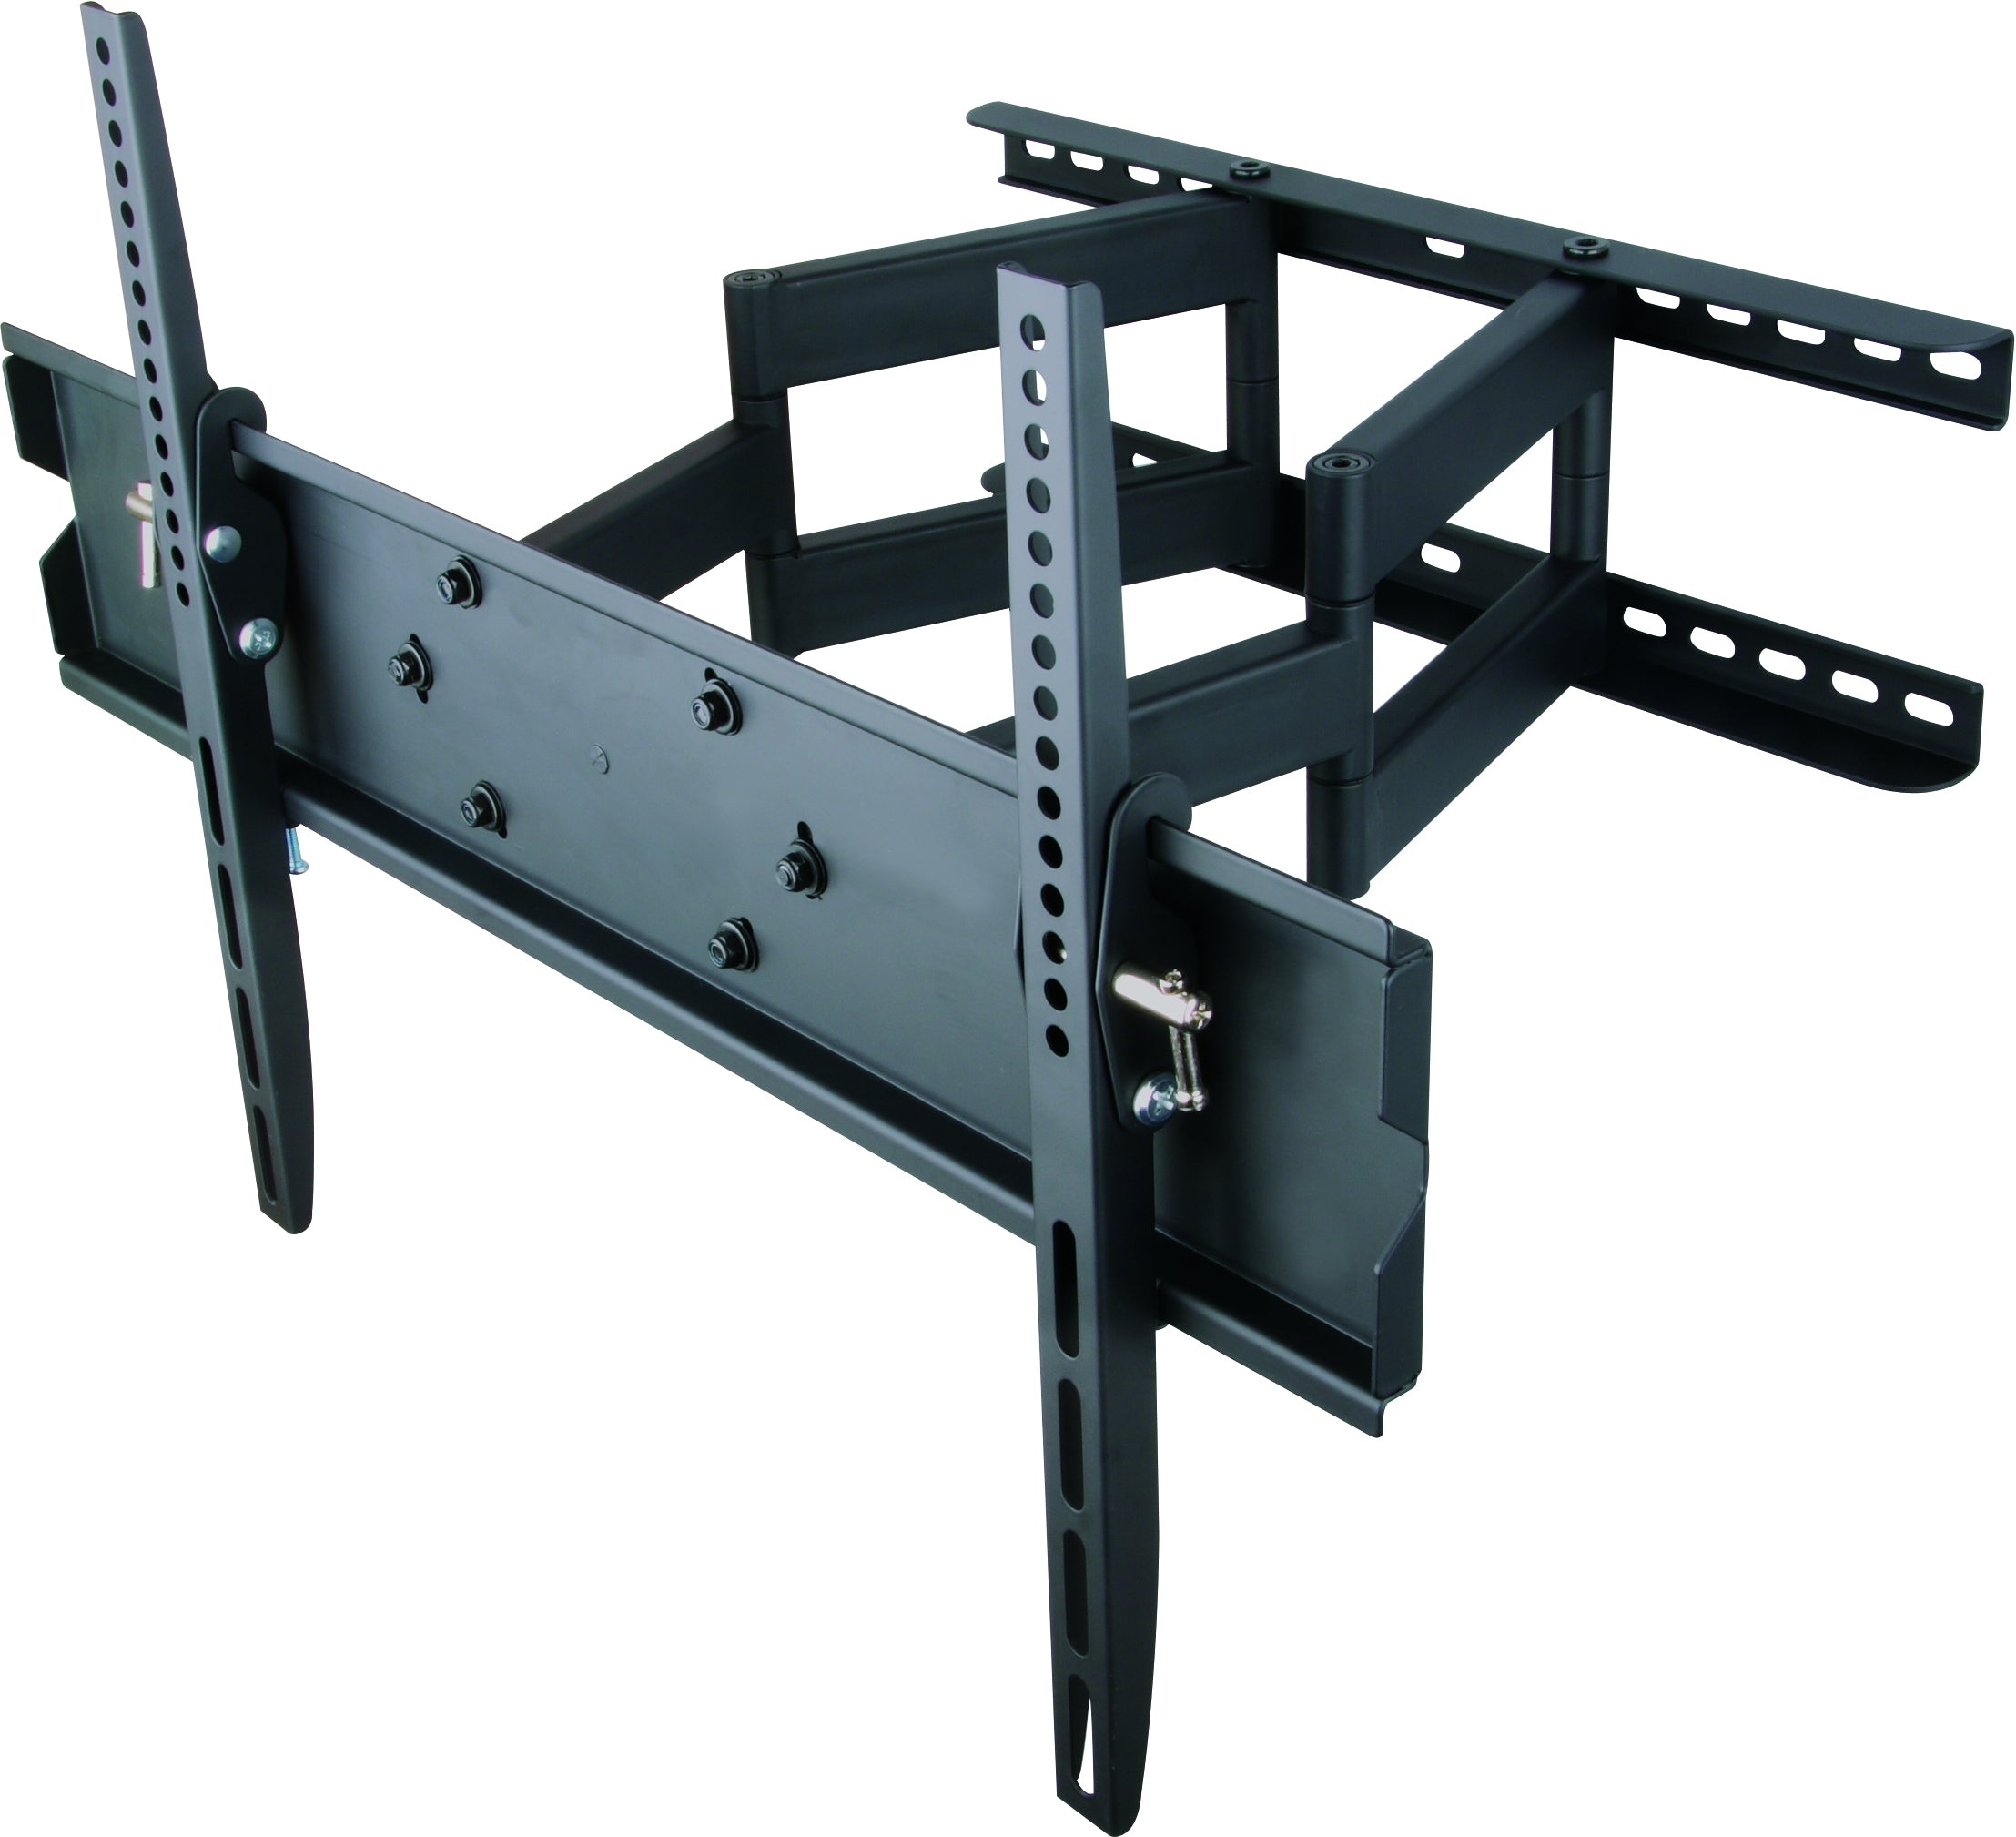 64-1147XL Full motion LCD LED TV Wall Mount Slimline Bracket for 42-80 inches TVs